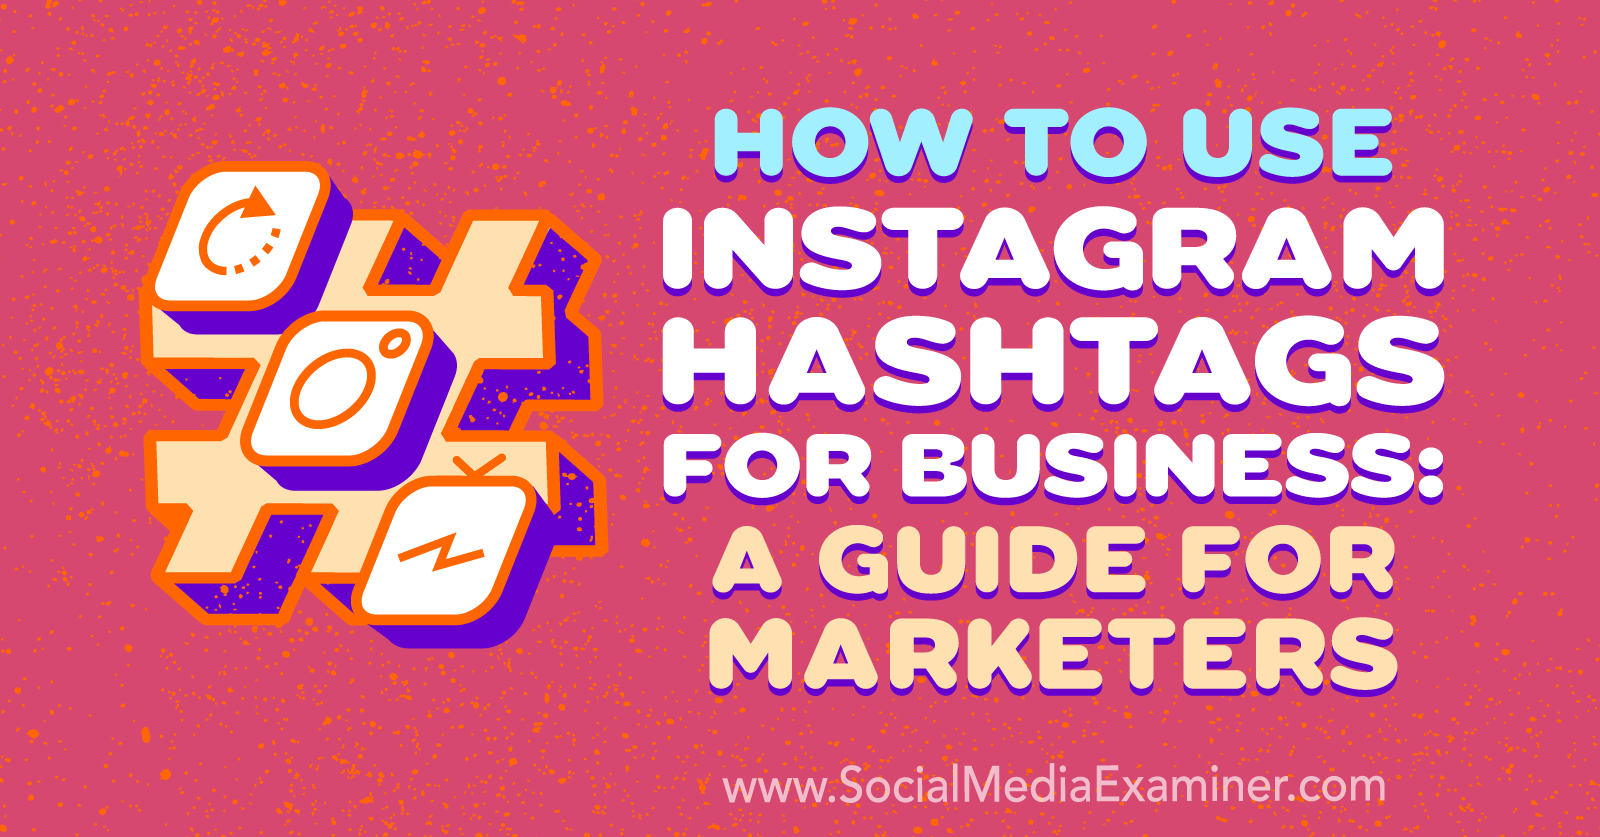 How to Use Instagram Hashtags for Business: A Guide for Marketers ...